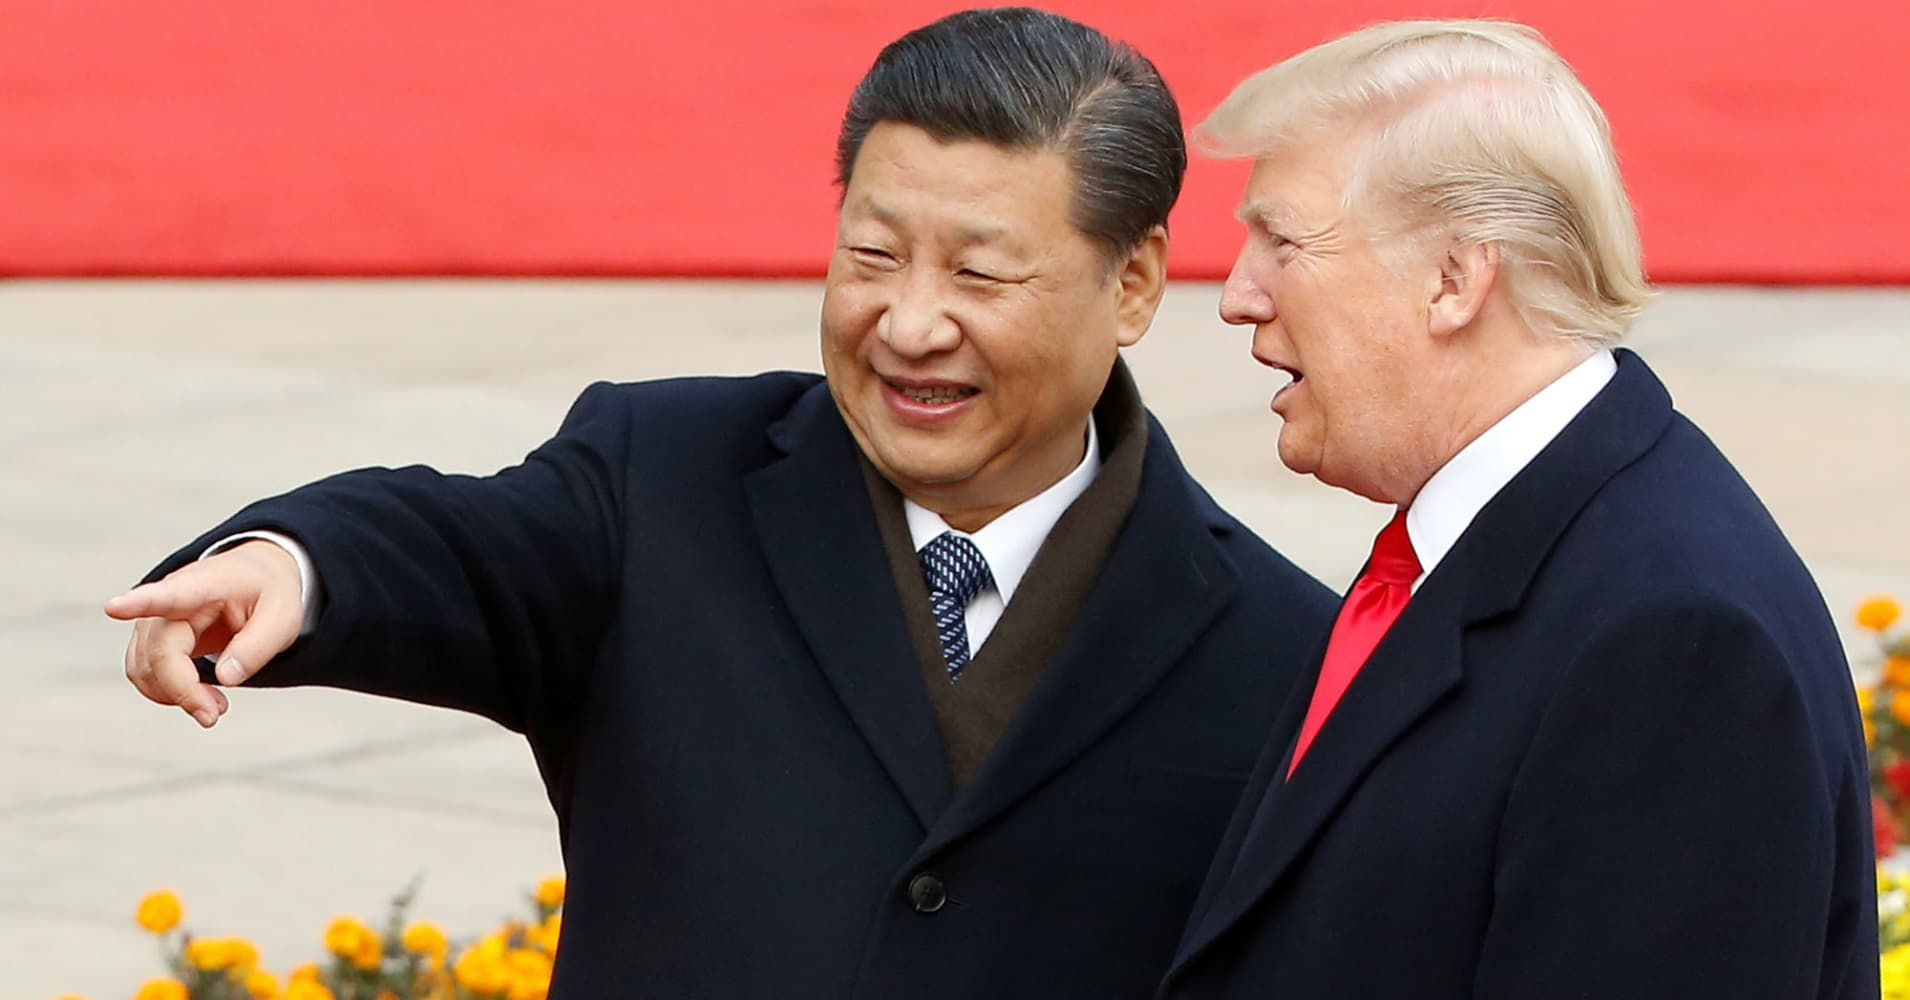 China suggests linking official state visit by Xi to Trump trade deal: Sources